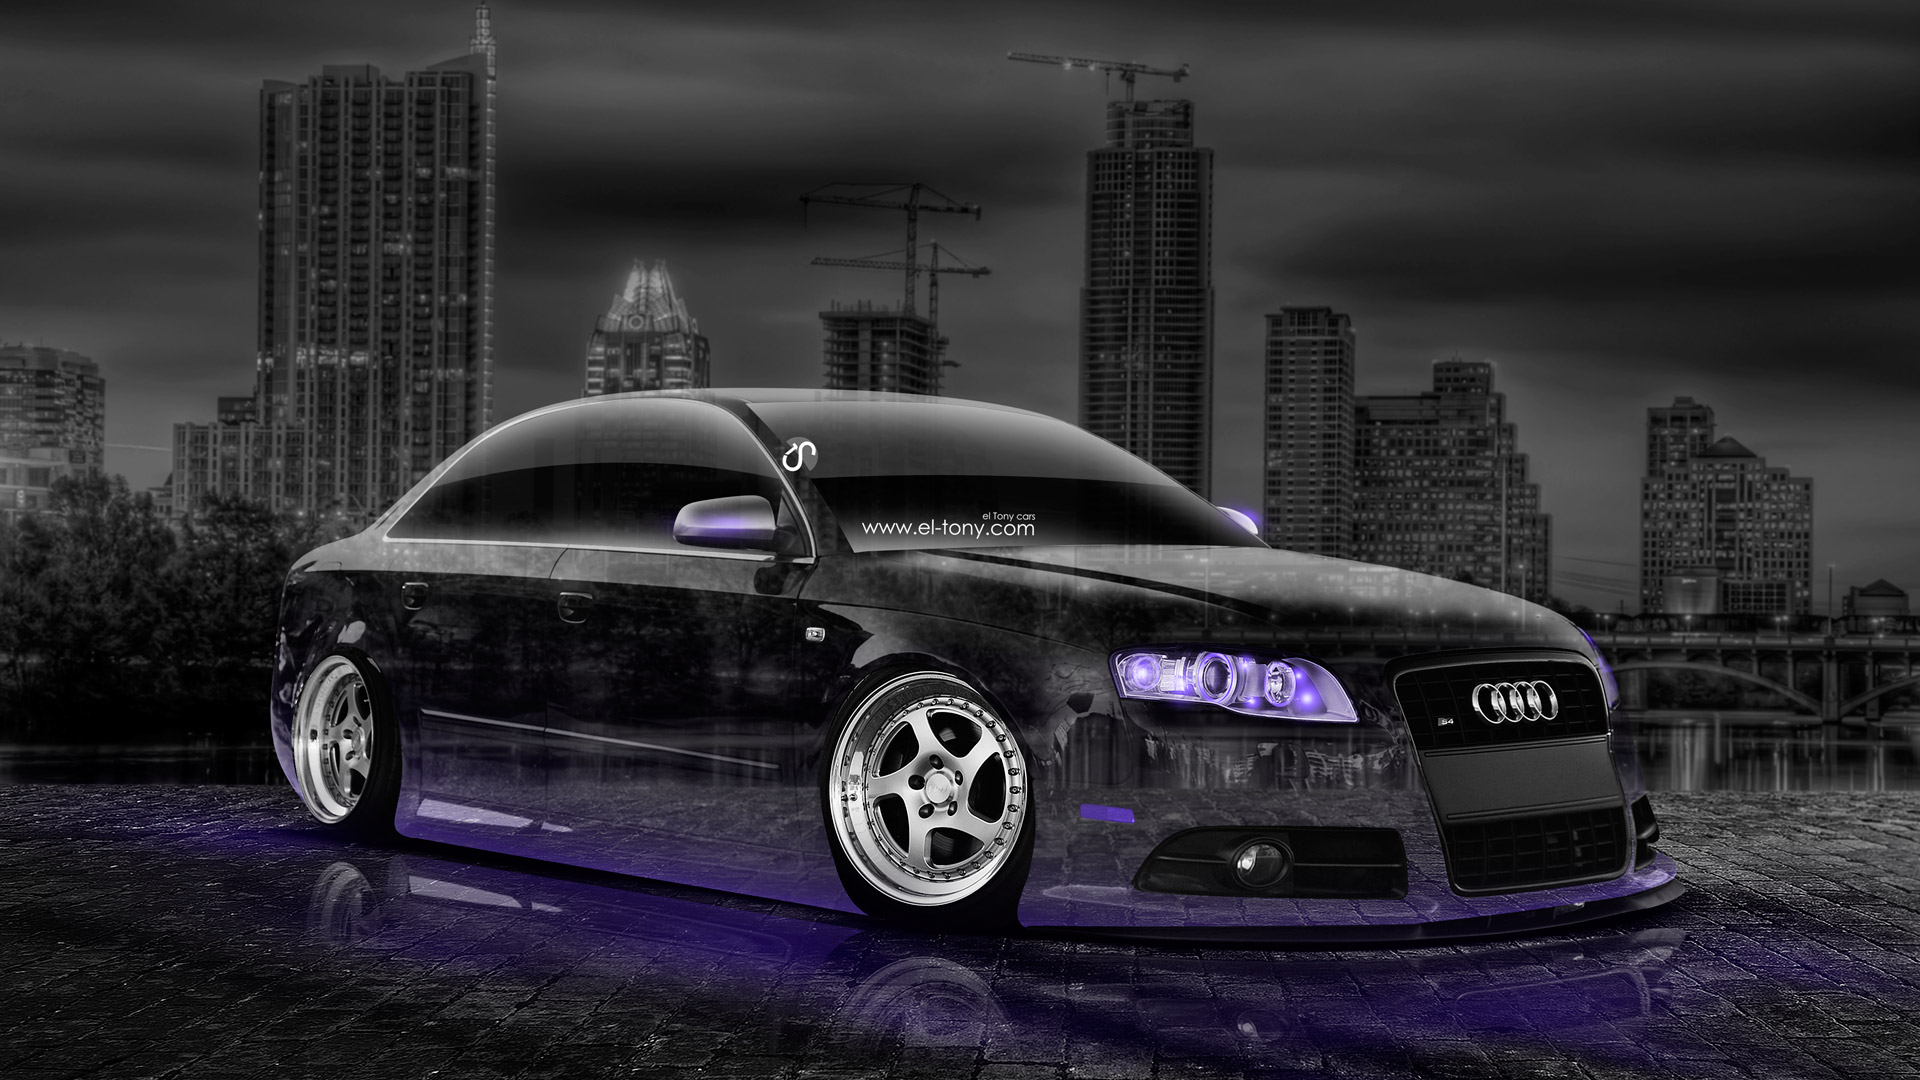 Audi S4 Tuning Crystal City Car 2014 El Tony